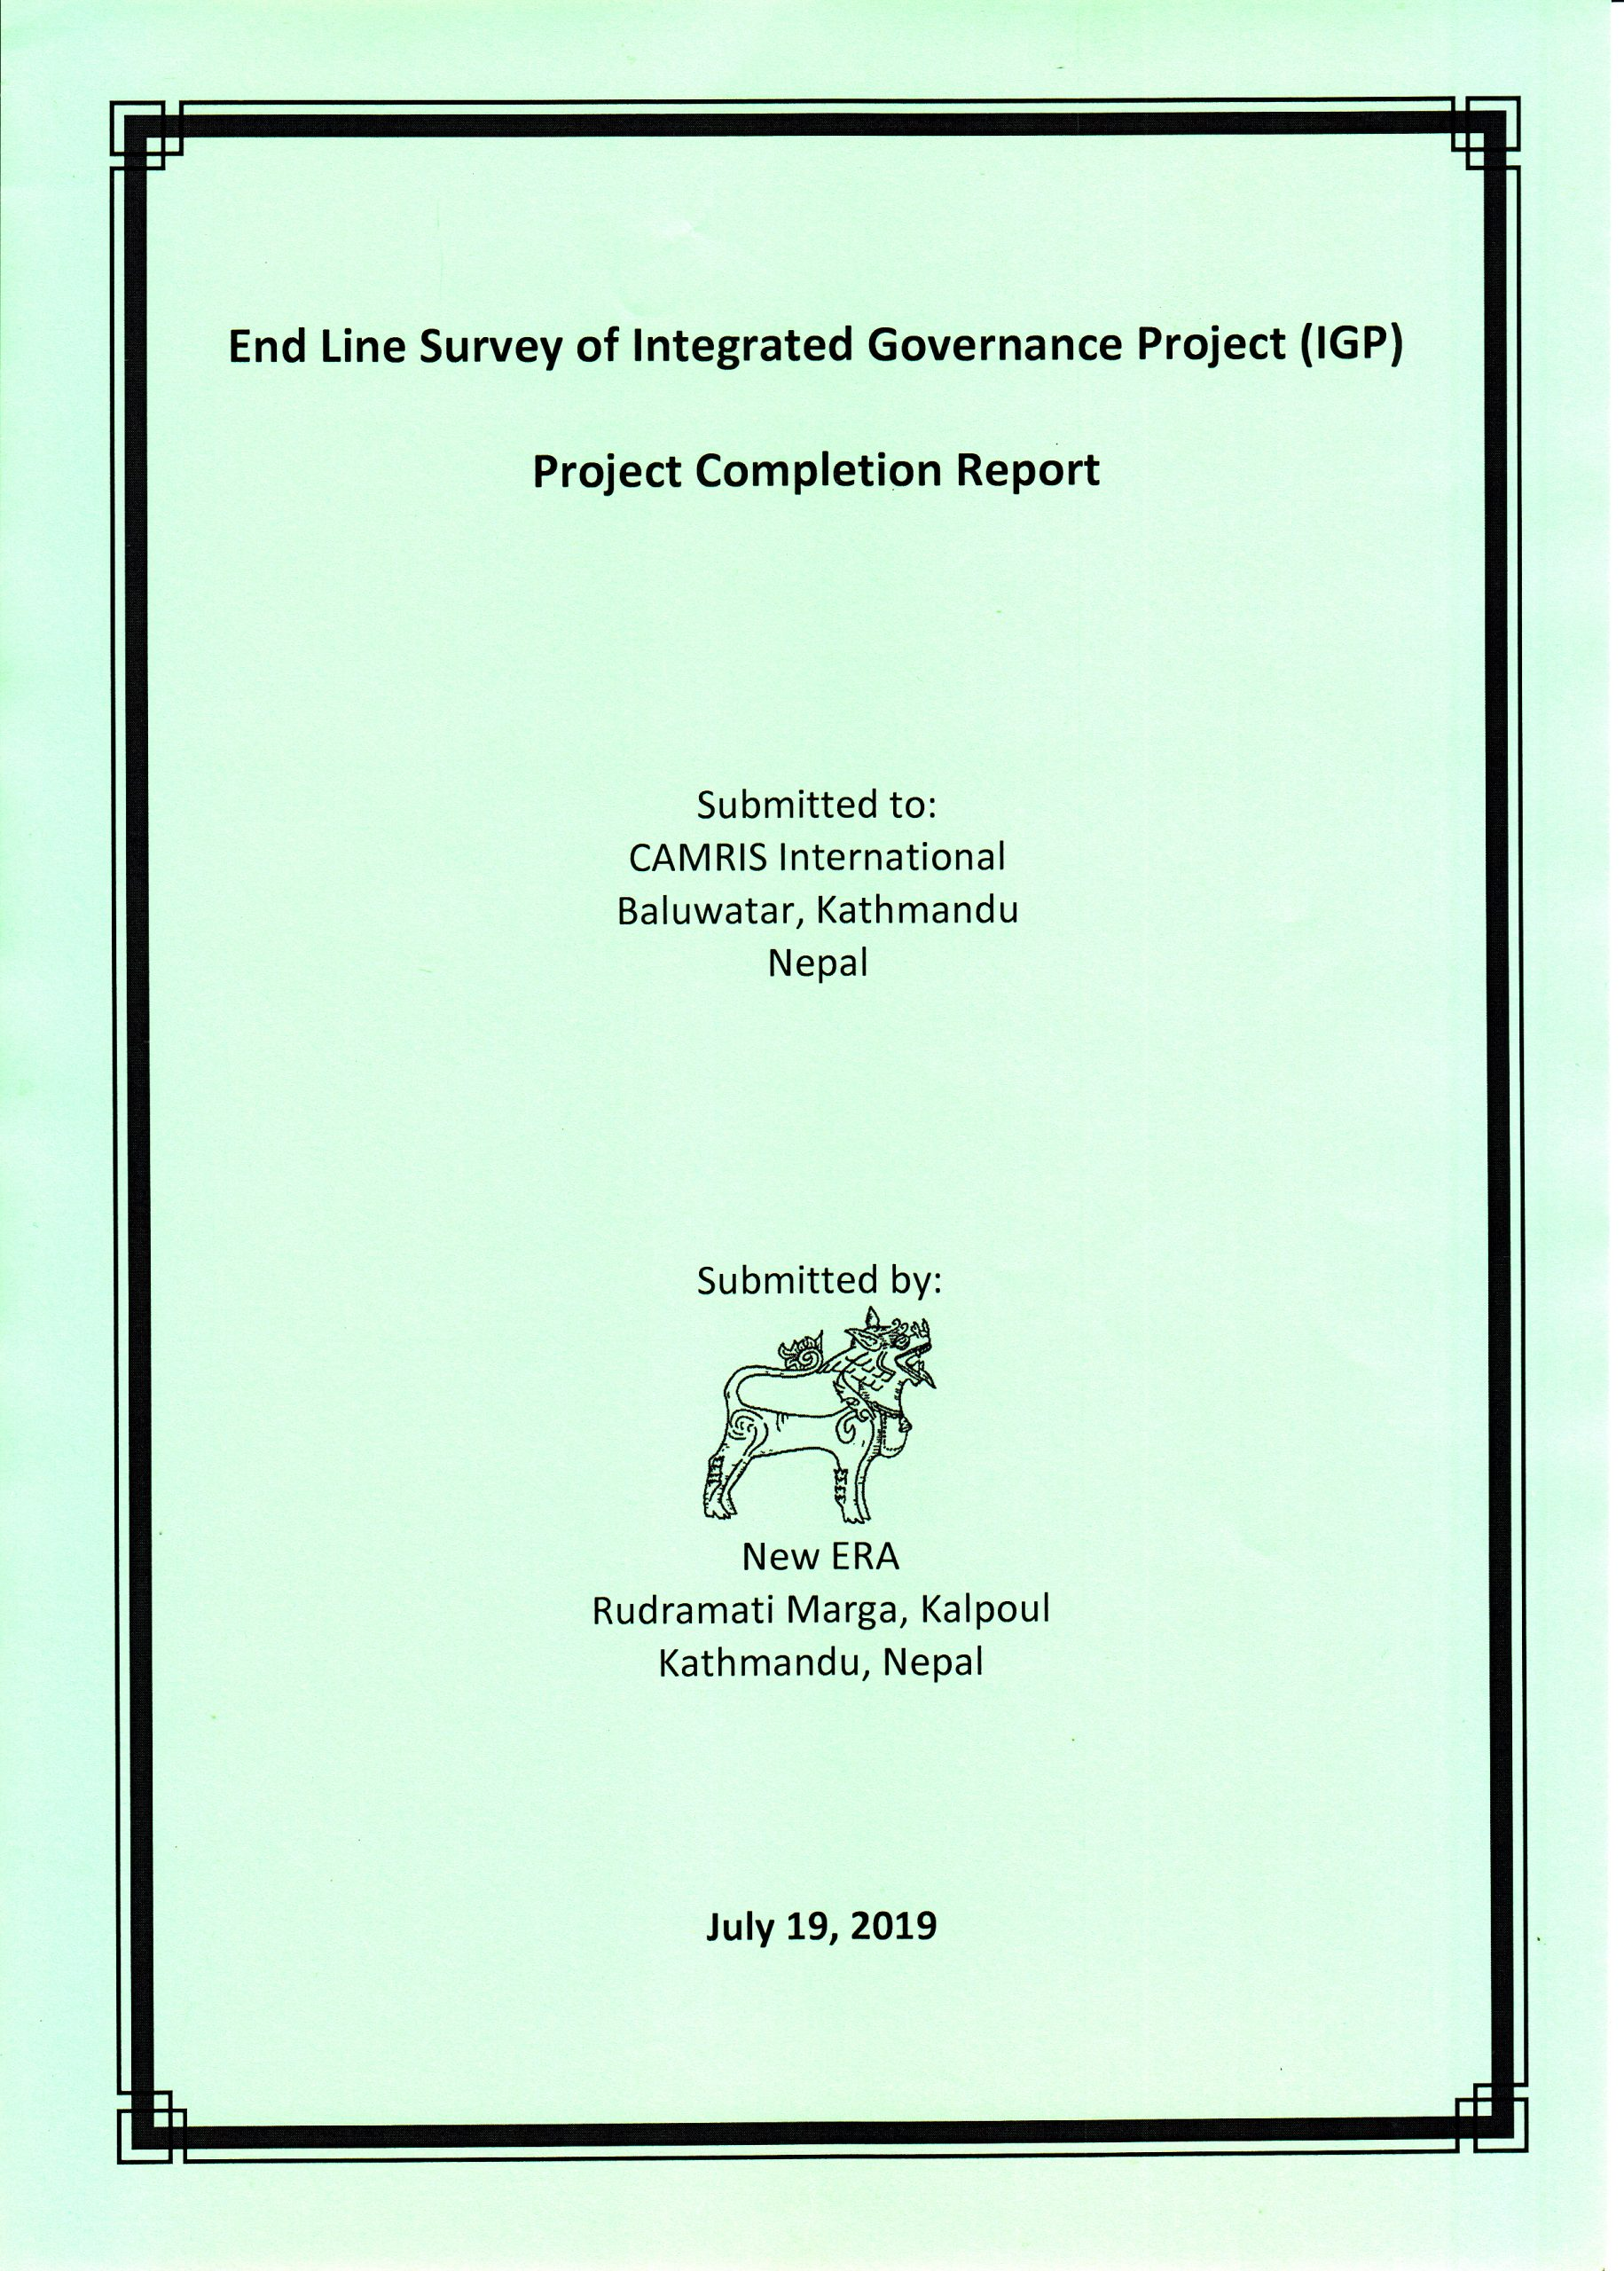 End-line Survey of Integrated Governance Project